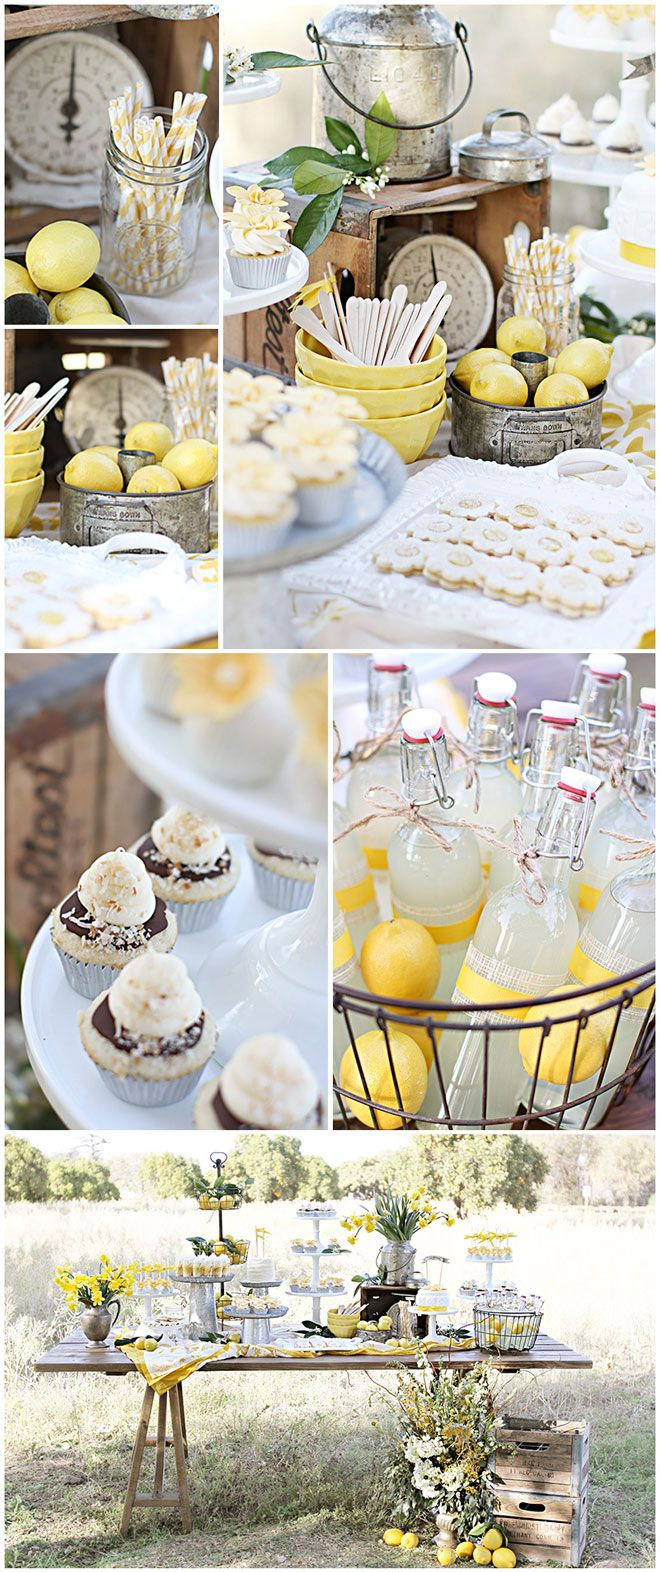 Lemon Dessert Table